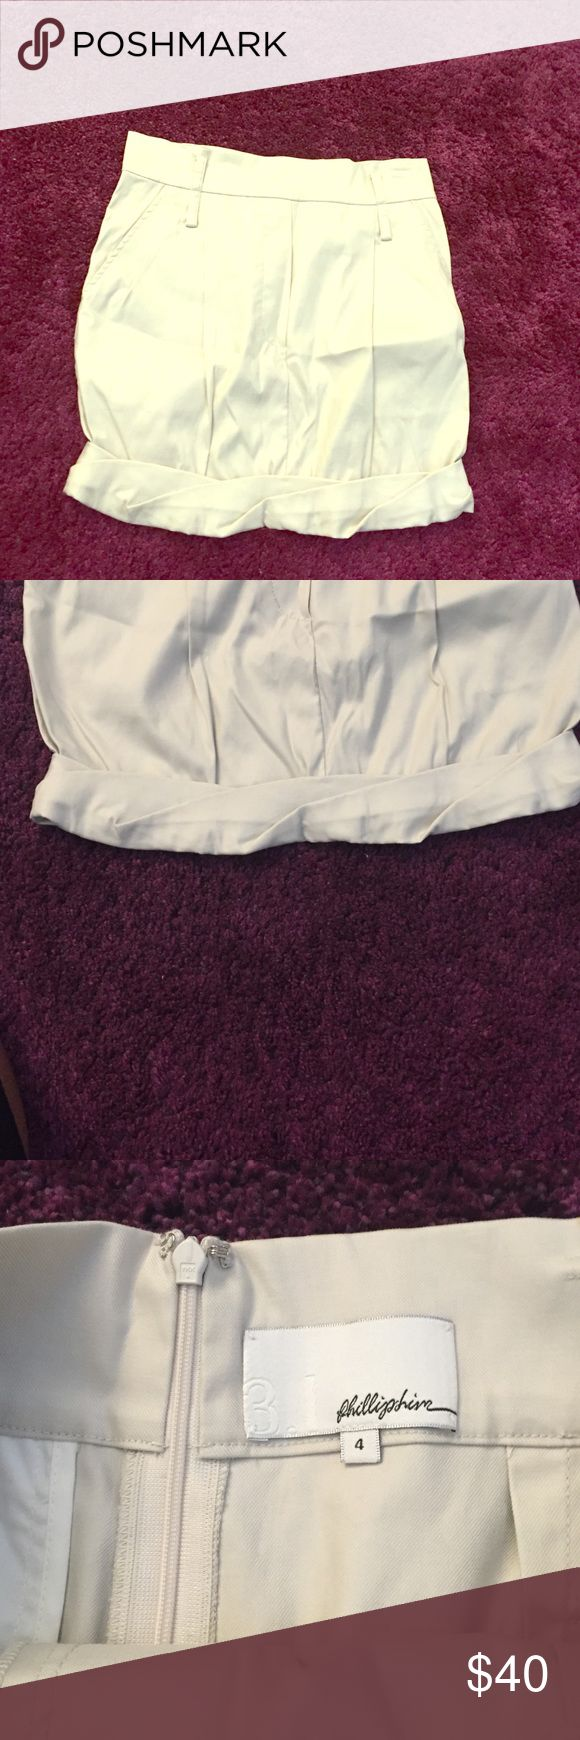 THANKSGIVING SALE! Phillip Lim khaki skirt This skirt is easily dressed up or down and has a unique twisted hem. In great condition. 3.1 Phillip Lim Skirts